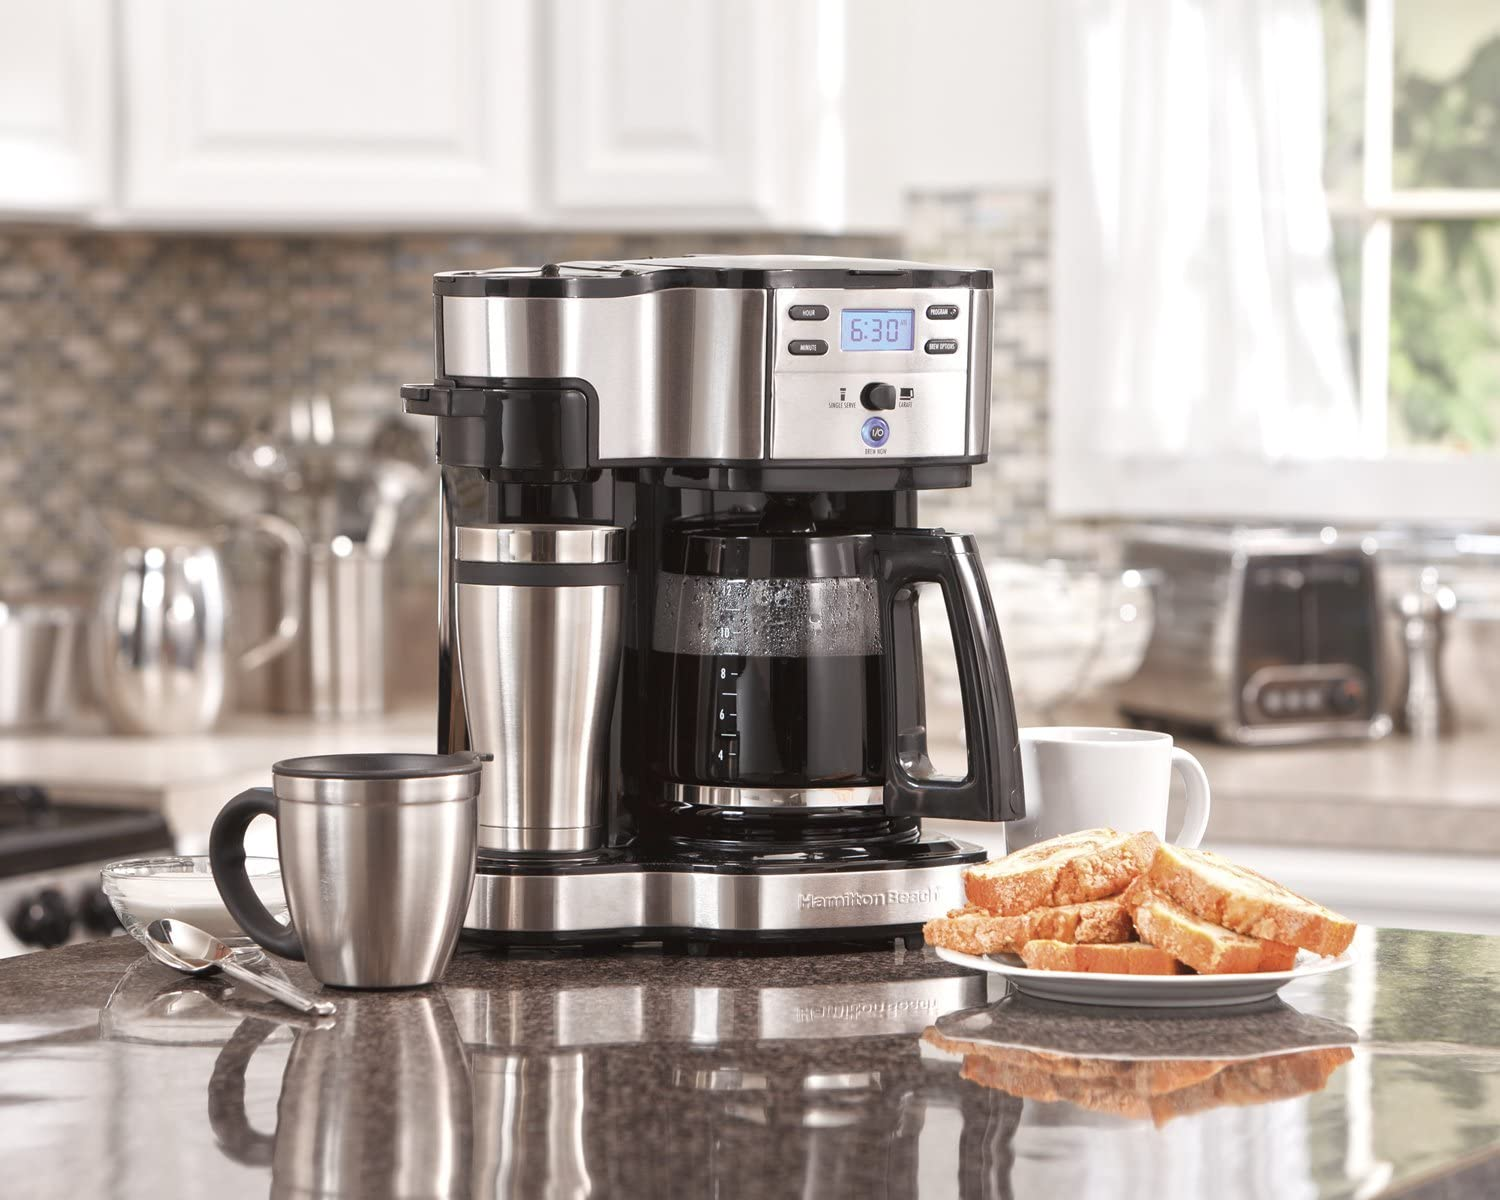 Hamilton Beach 49980A Single Serve Coffee Maker and Coffee Pot Maker, Programmable, Black Stainless Steel Renewed